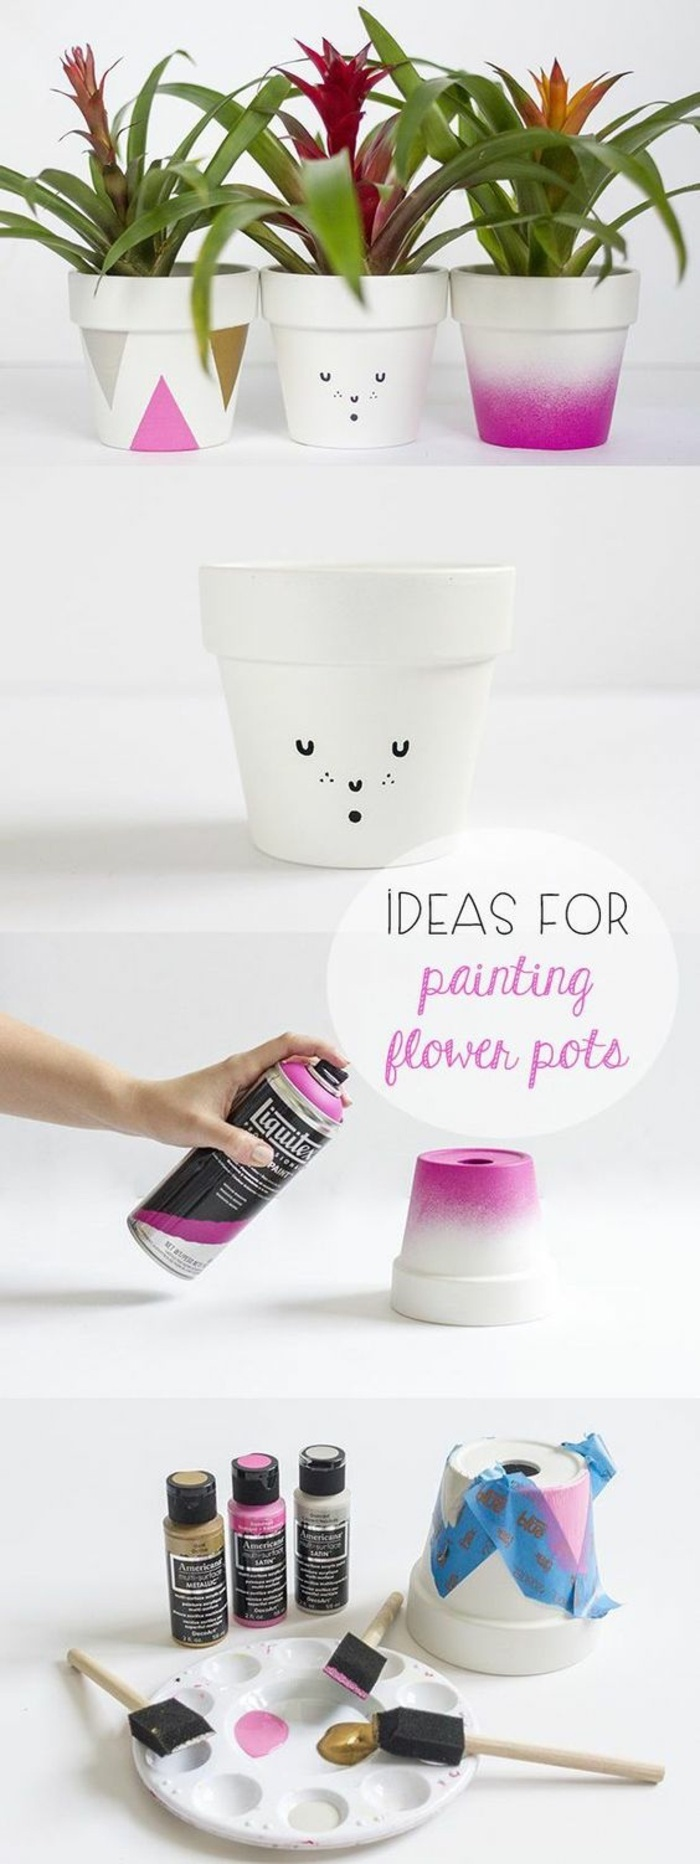 ideas for painting flower pots, ceramic pots, pink paint, fun crafts for teens